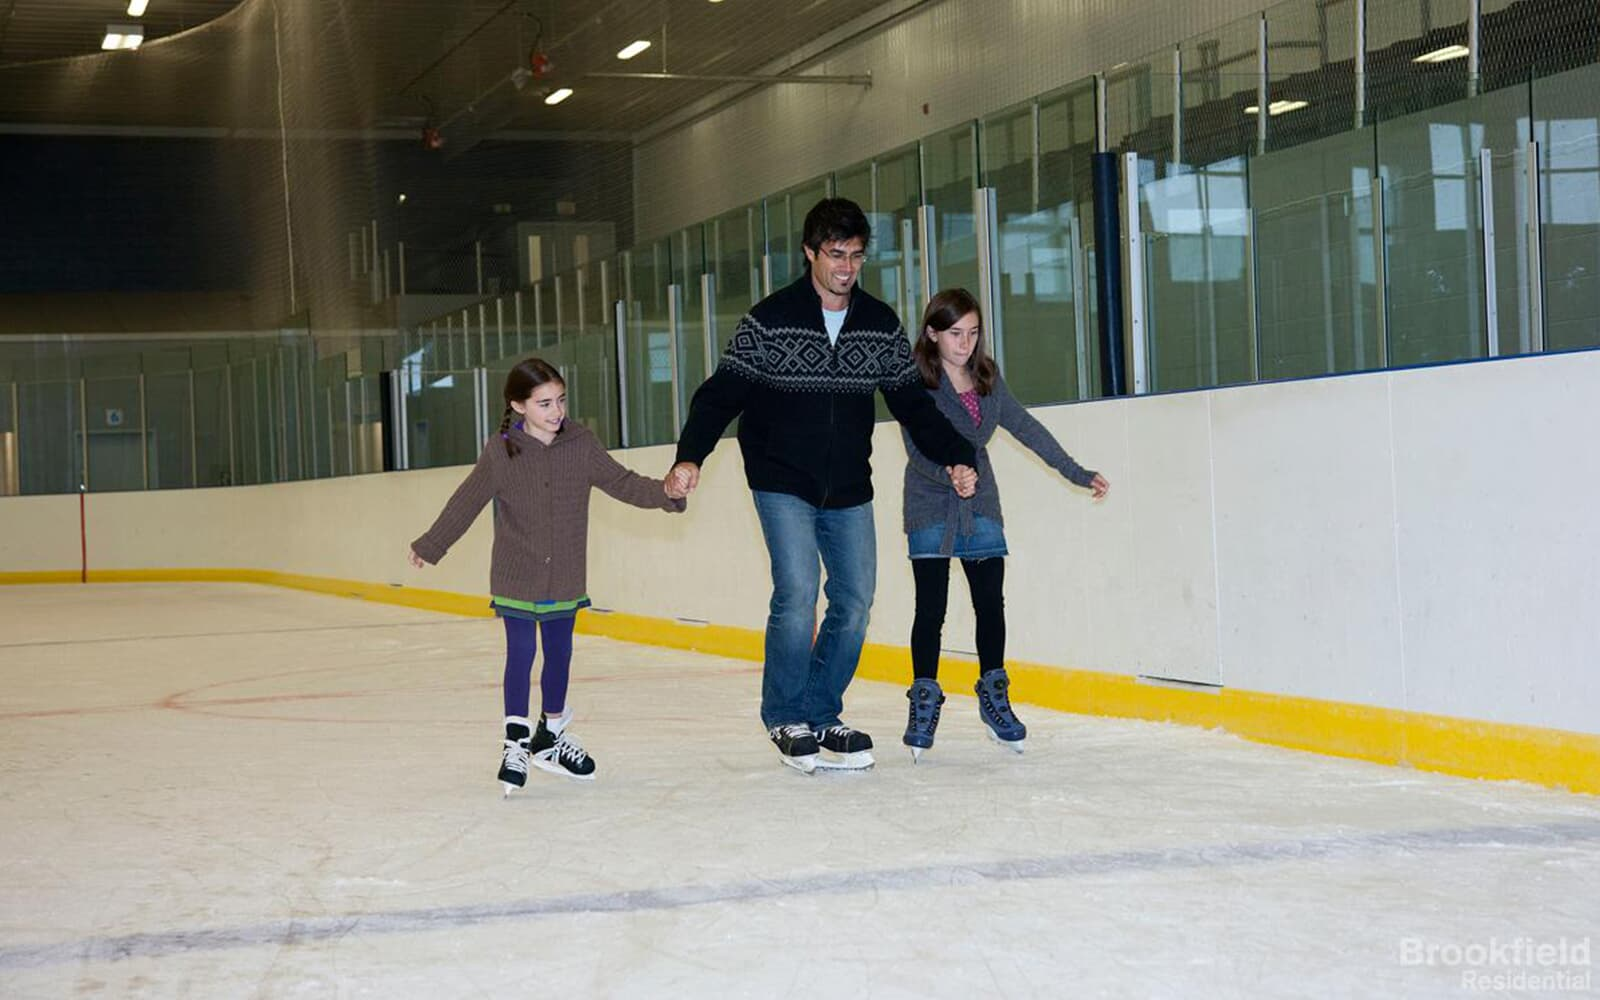 Indoor skating in Caledon East, ON